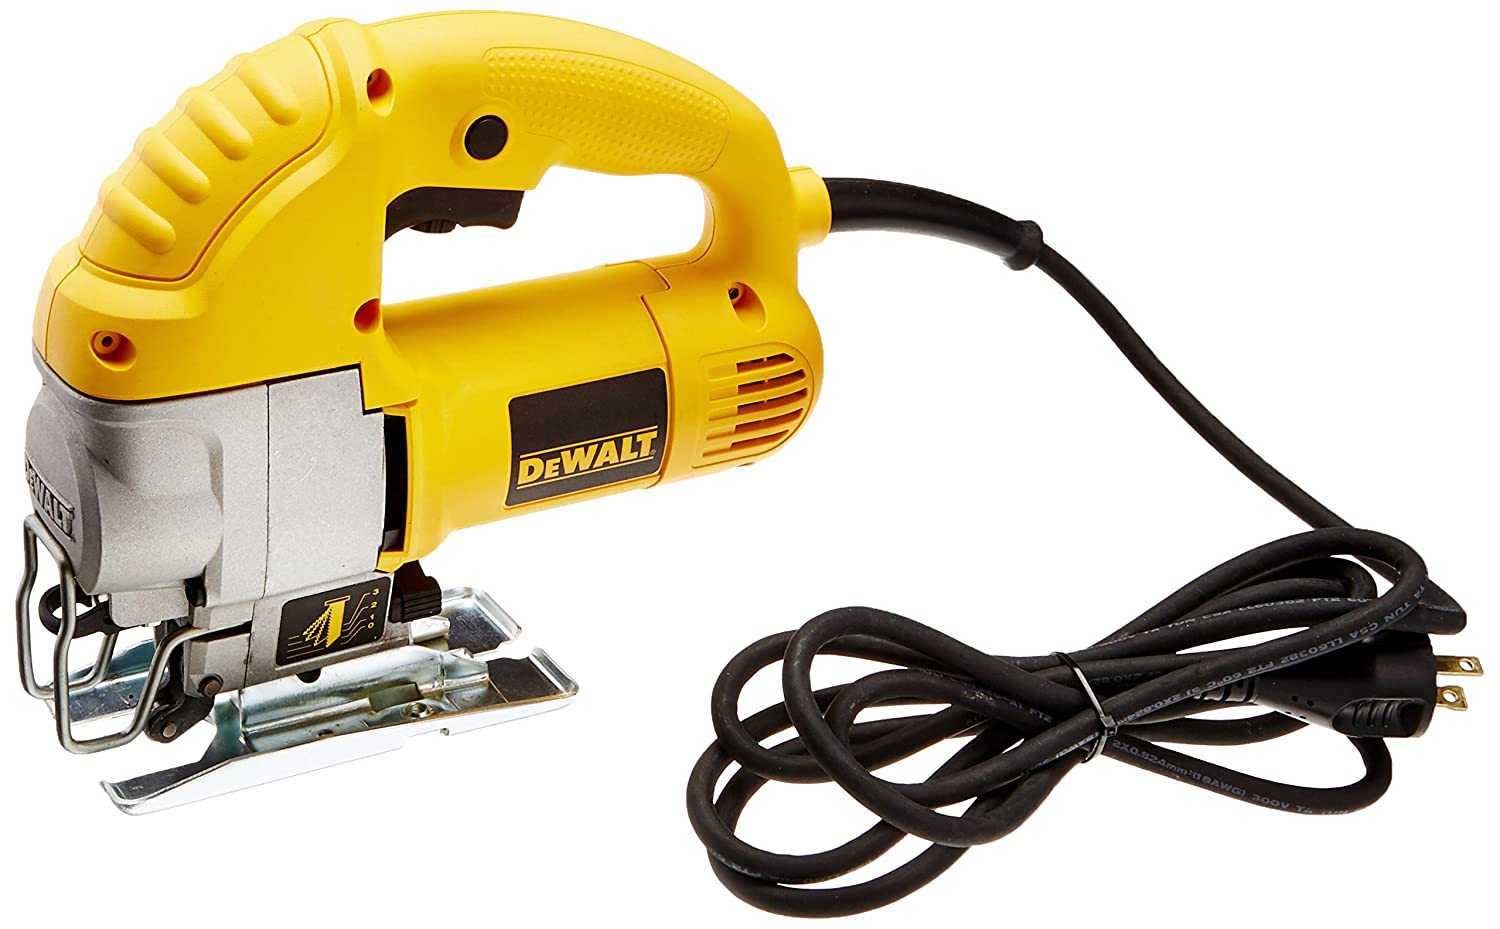 Factory reconditioned dewalt dw317r 1 in variable speed compact jig factory reconditioned dewalt dw317r 1 in variable speed compact jig saw power jig saws amazon greentooth Choice Image